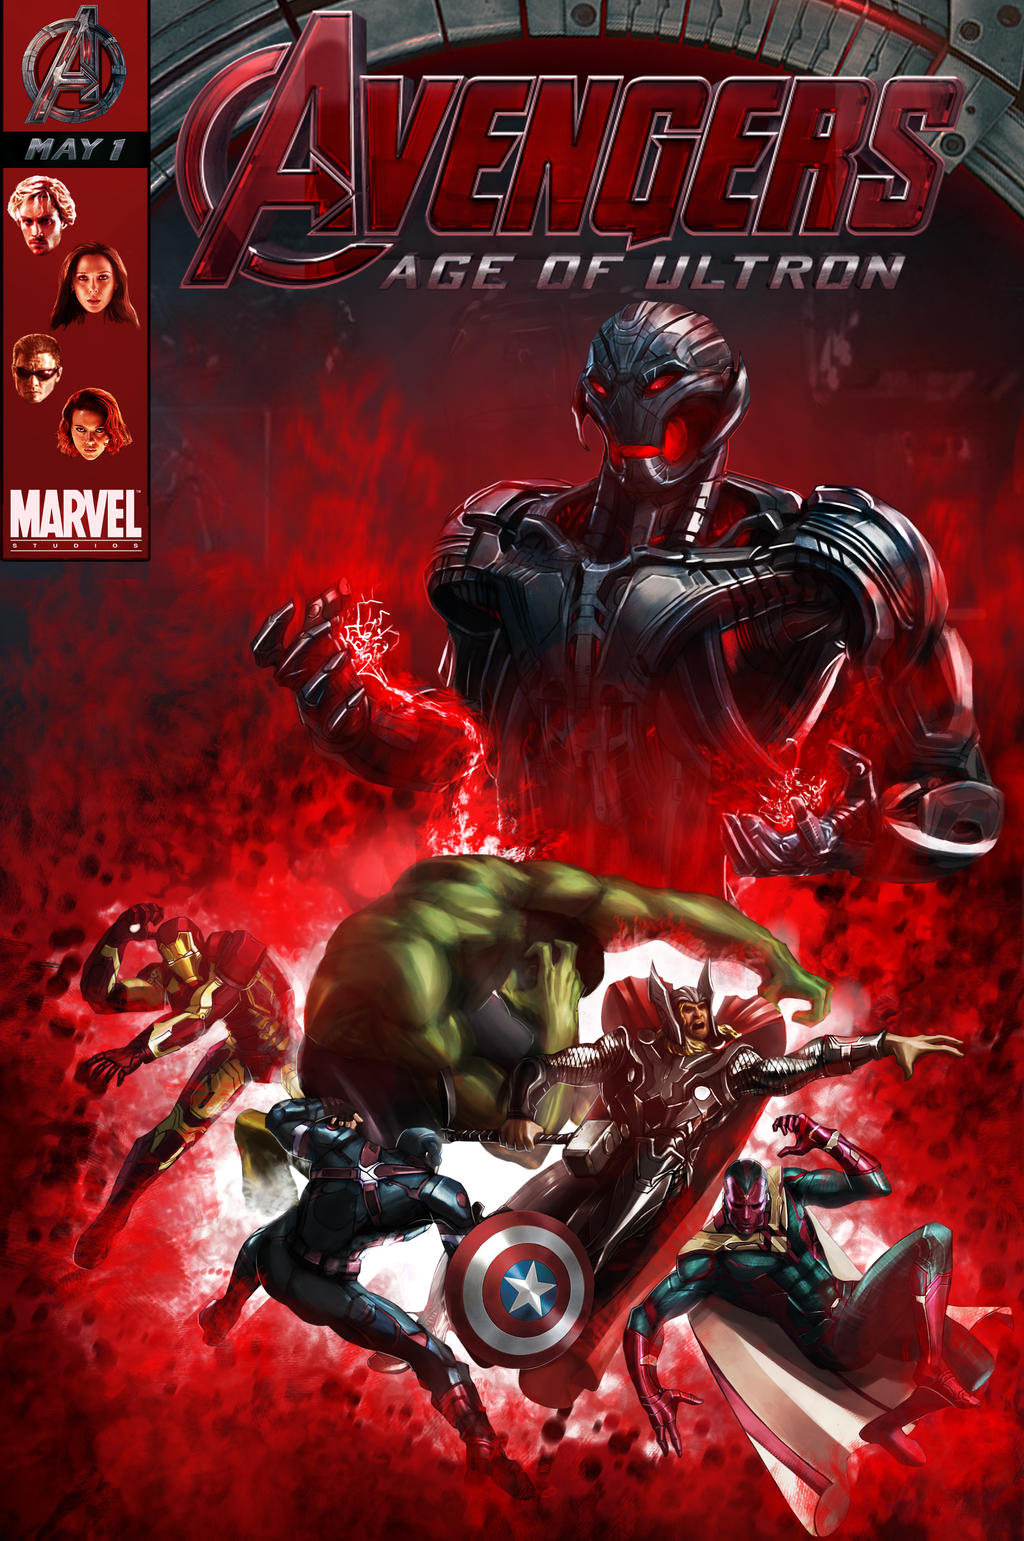 Avengers Age Of Ultron By Iloegbunam On Deviantart: Avengers Age Of Ultron Fanart Poster By Funnyberserker On